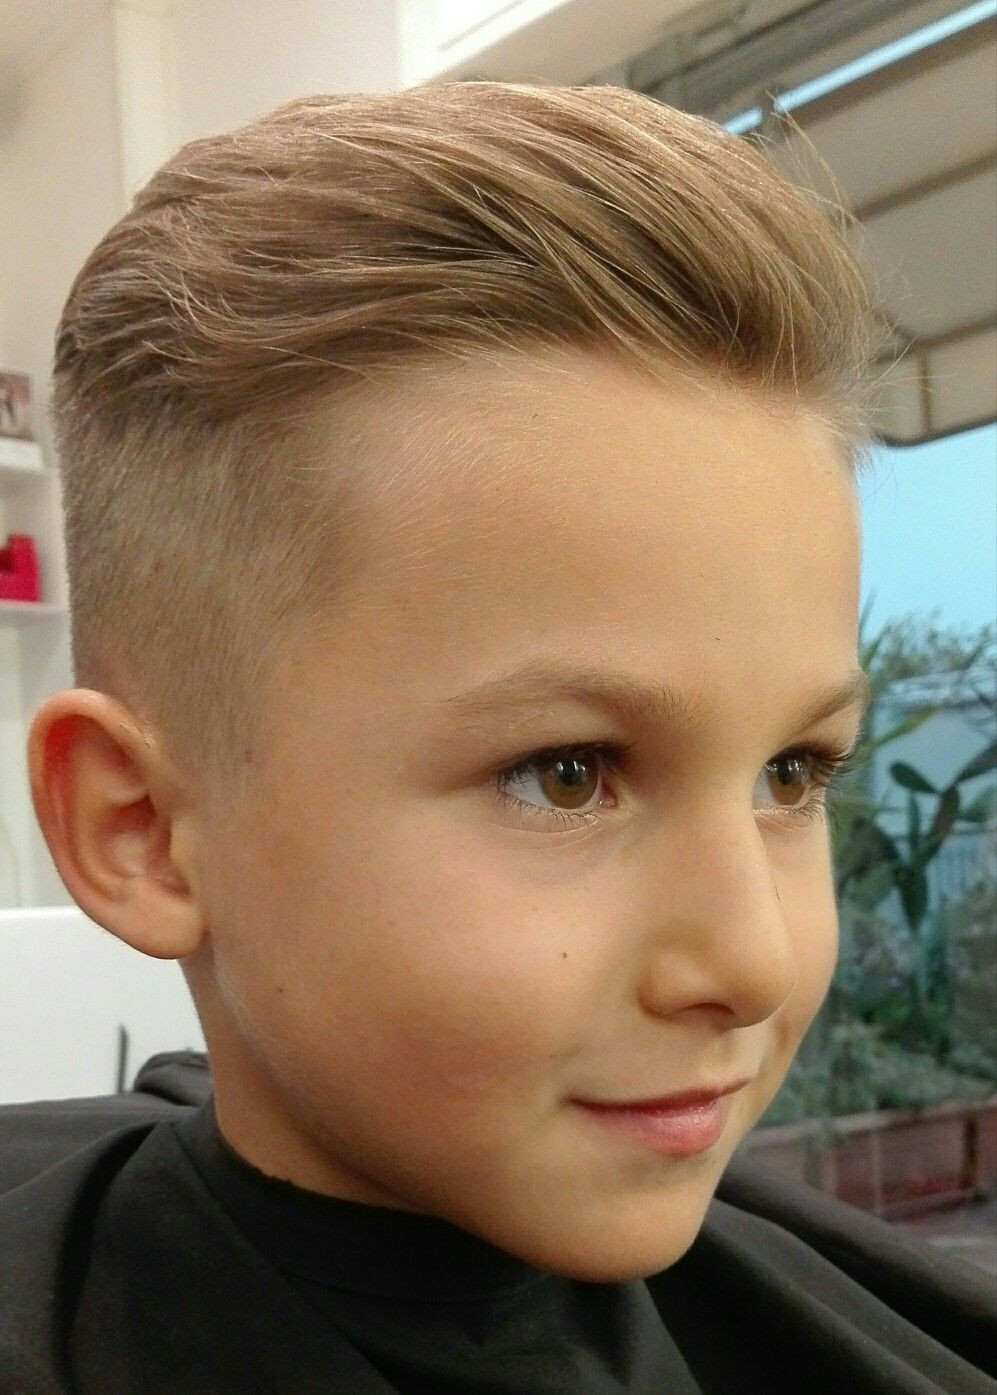 Best ideas about Boys Hairstyle 2019 . Save or Pin Pin by Trish Rogers on Hair in 2019 Now.